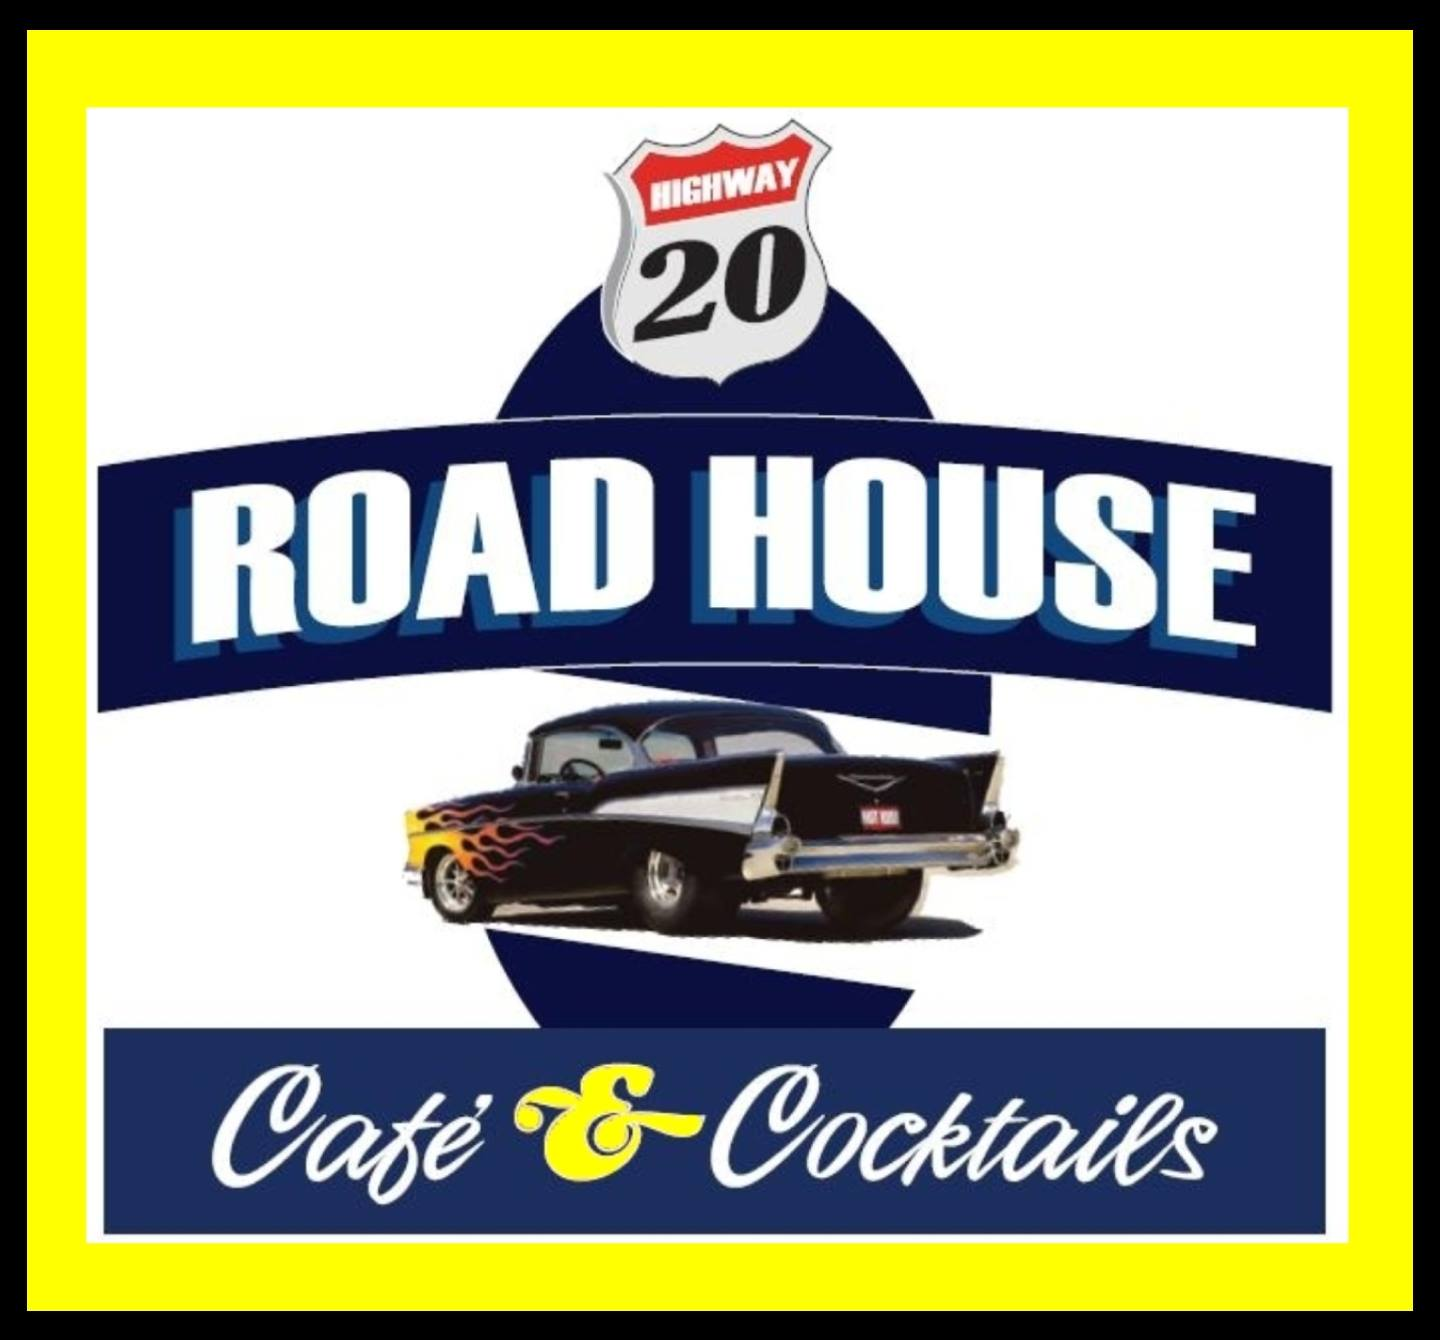 Highway 20 roadhouse.jpg